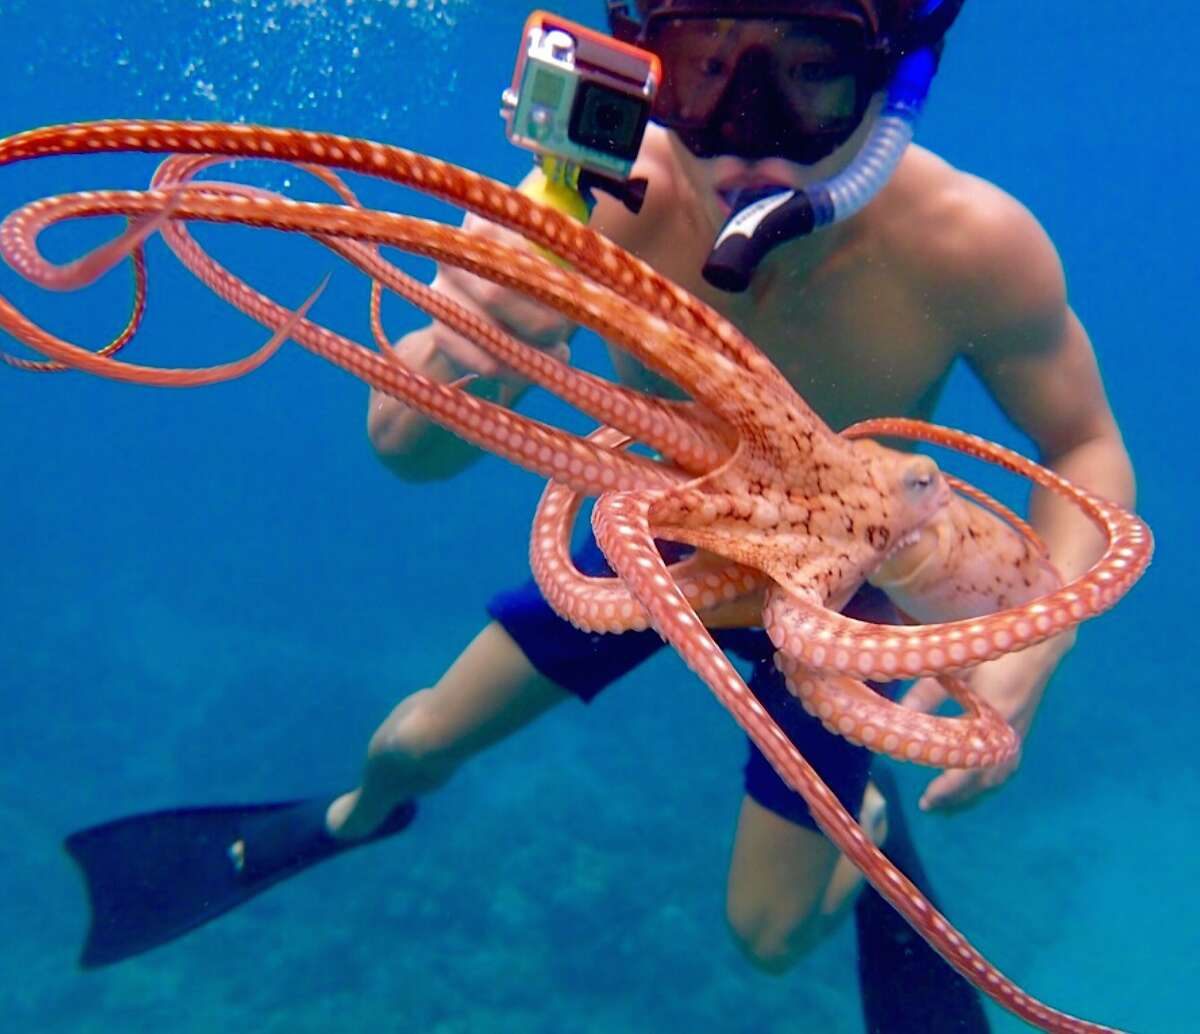 Guests at the Andaz Maui can use the resort's complimentary GoPro video cameras to capture high-definition images of reef creatures like this octopus.